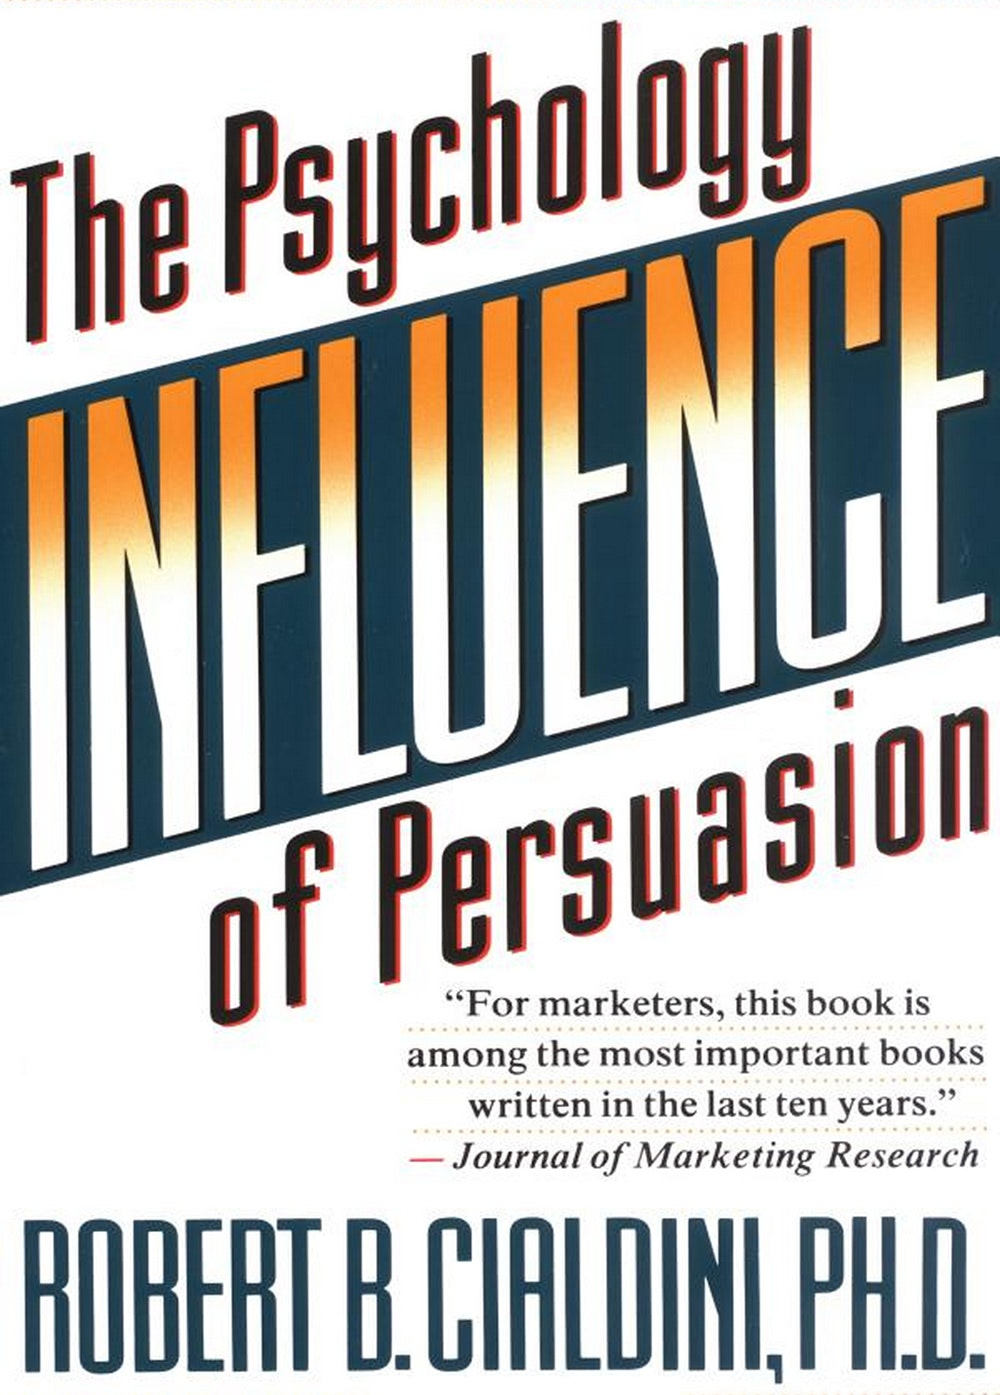 Influence – Robert B. Cialdini, Ph.D